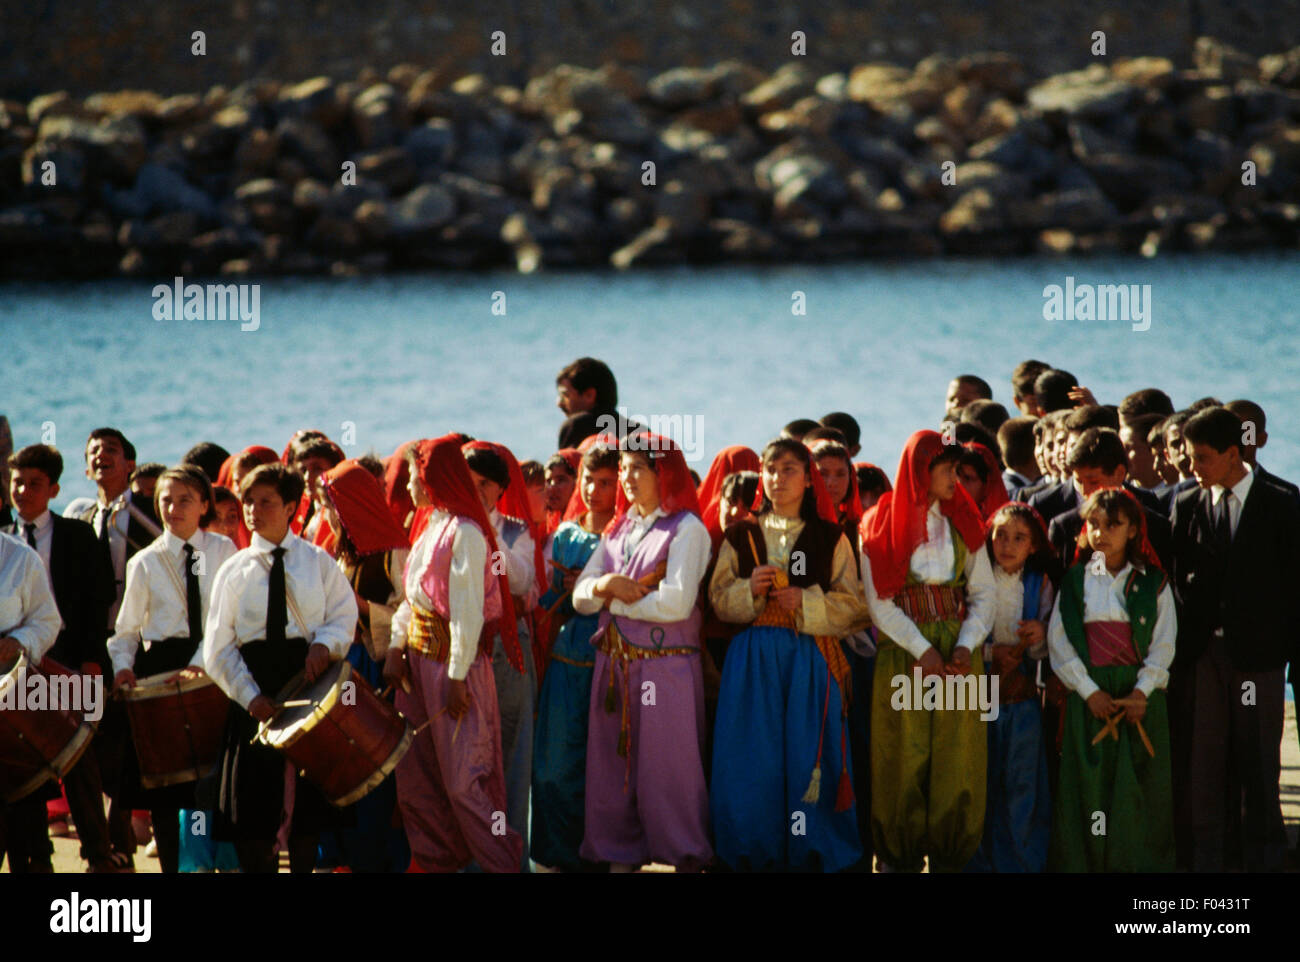 Boys and girls at the celebrations for National Sovereignty and Children's Day (April 23), Anamur, Turkey. Stock Photo